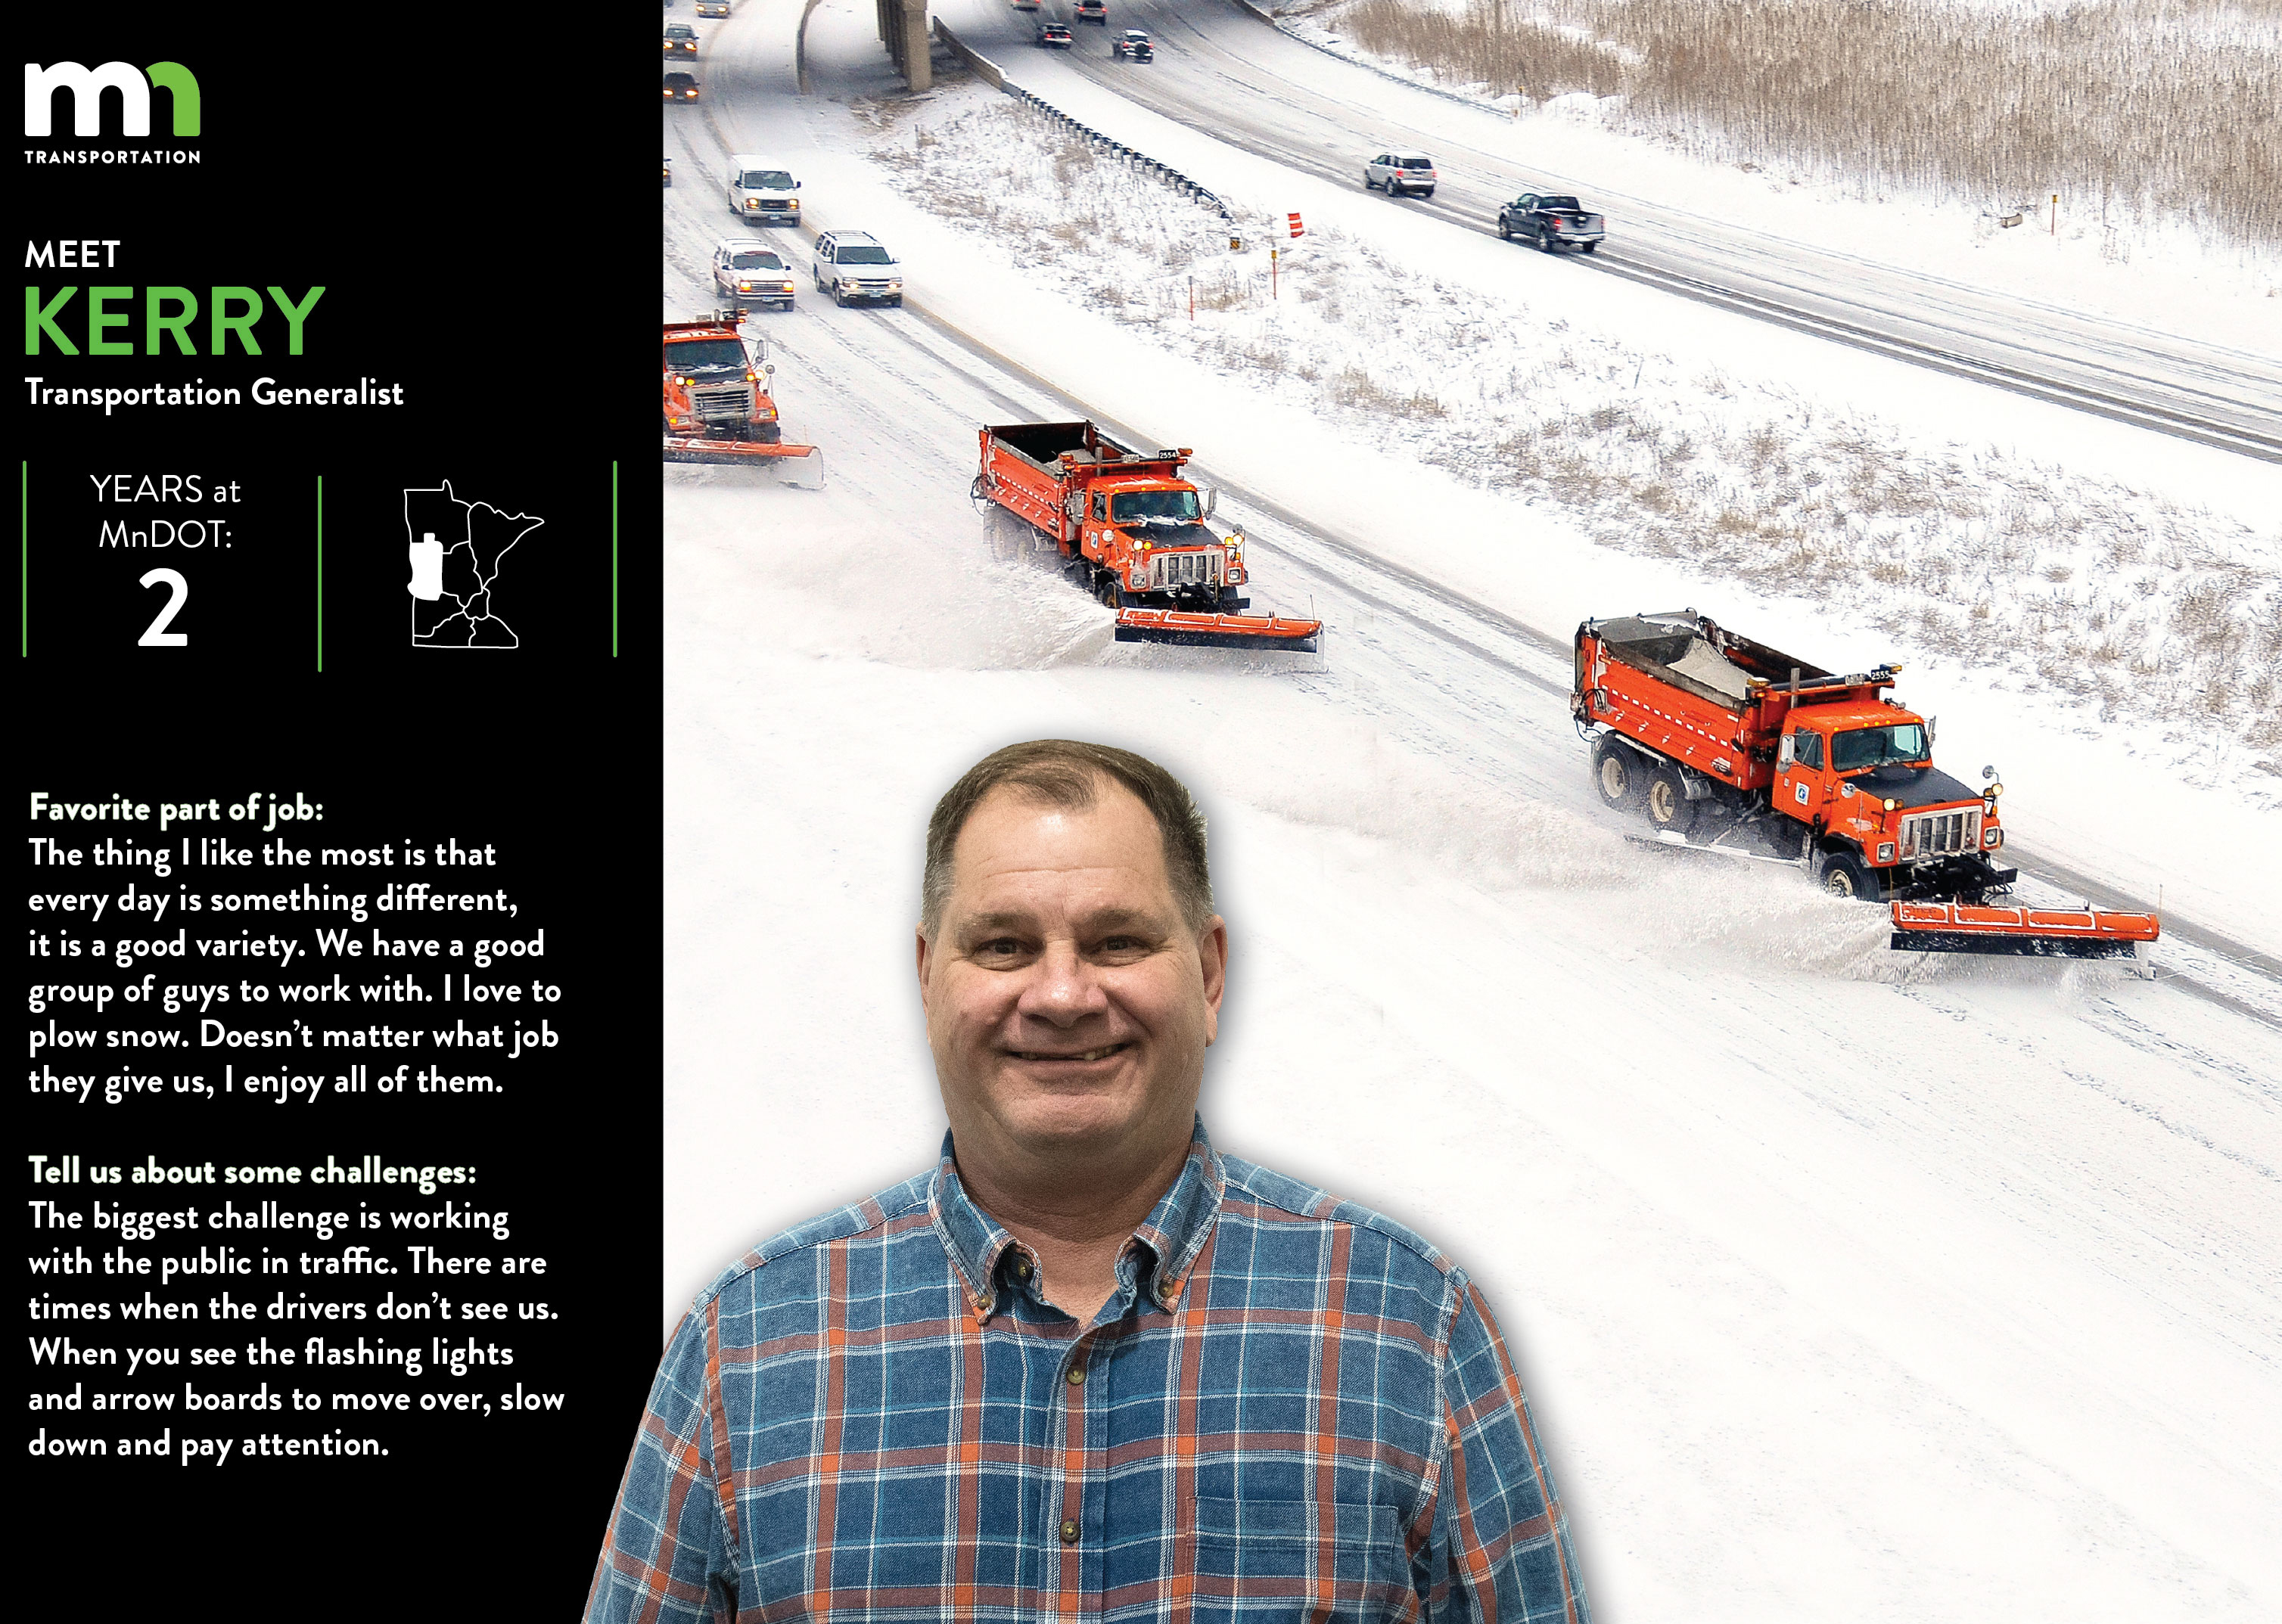 Kerry Donley, a transportation generalist, says the thing he likes most about his job is that every day has something different. WE have a good group of guys to work with. I love to plow snow. Doesn't matter what job they give us, I enjoy all of them. The biggest challenge is working with the public in traffic. There are times when the drivers don't see us. When you see the flashing lights and arrow boards to move over, slow down and pay attention.